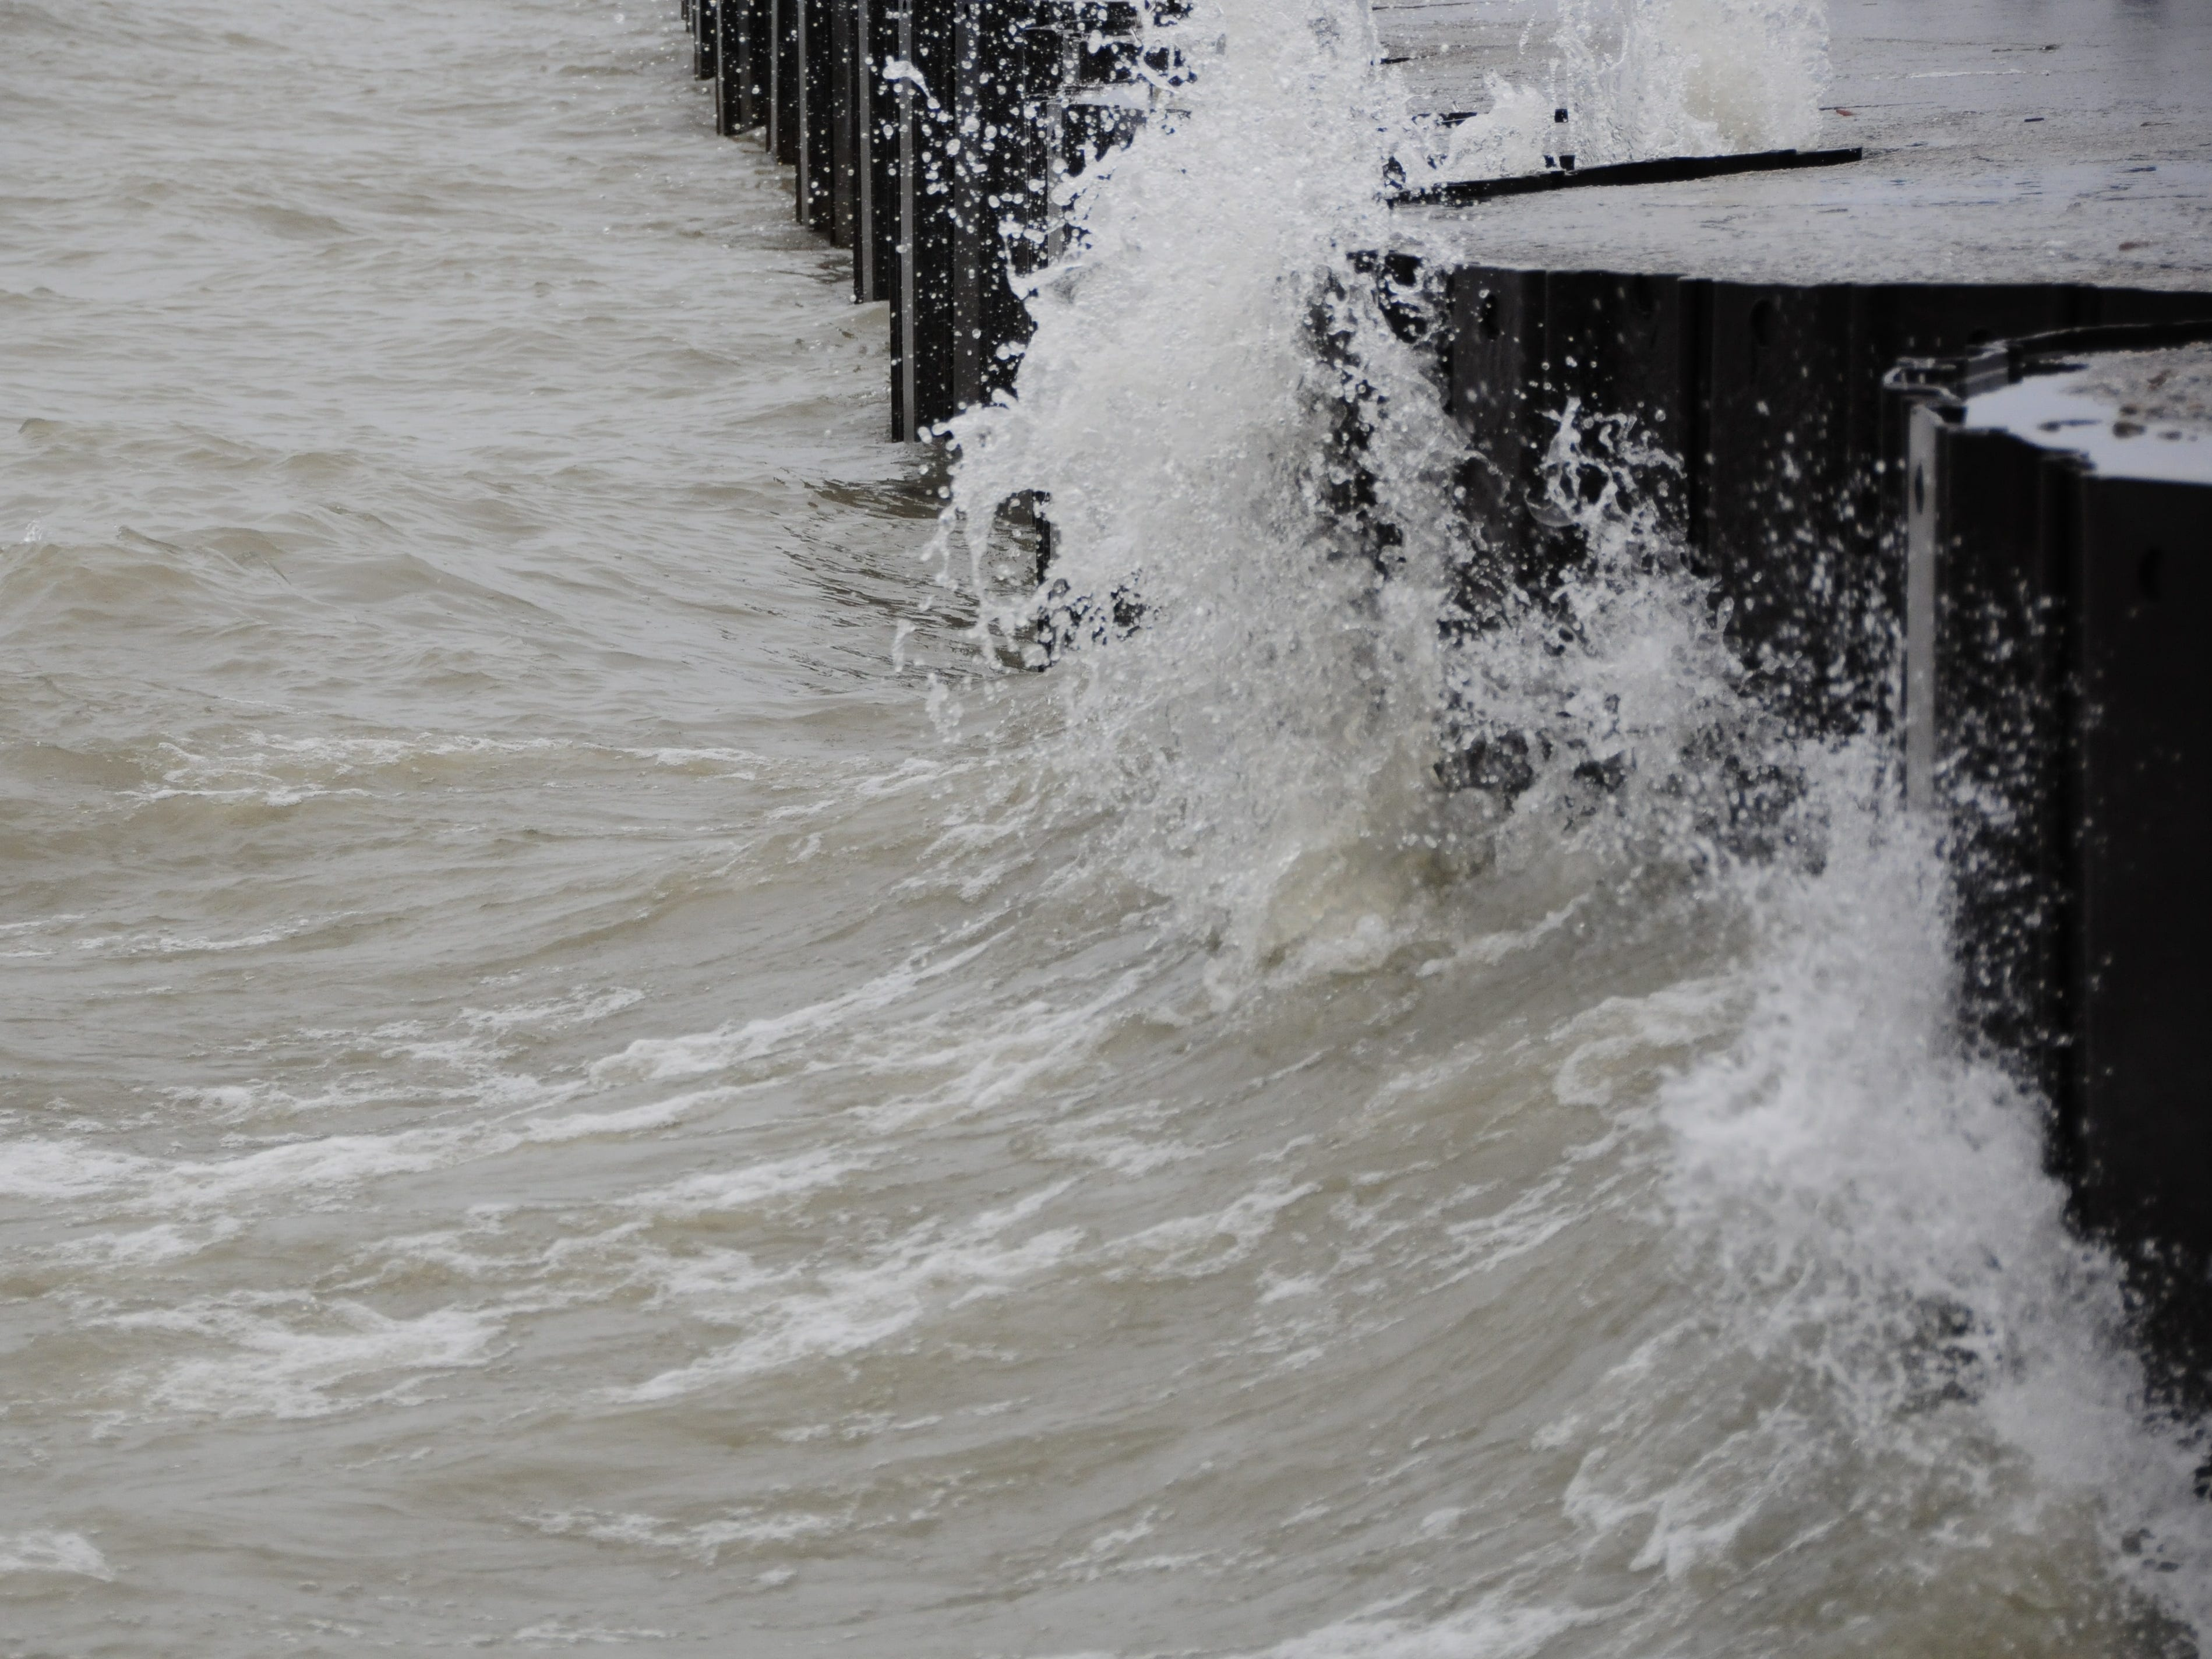 Waves slam into the breakwall at Port Sanilac on Saturday, Dec. 22, 2018.